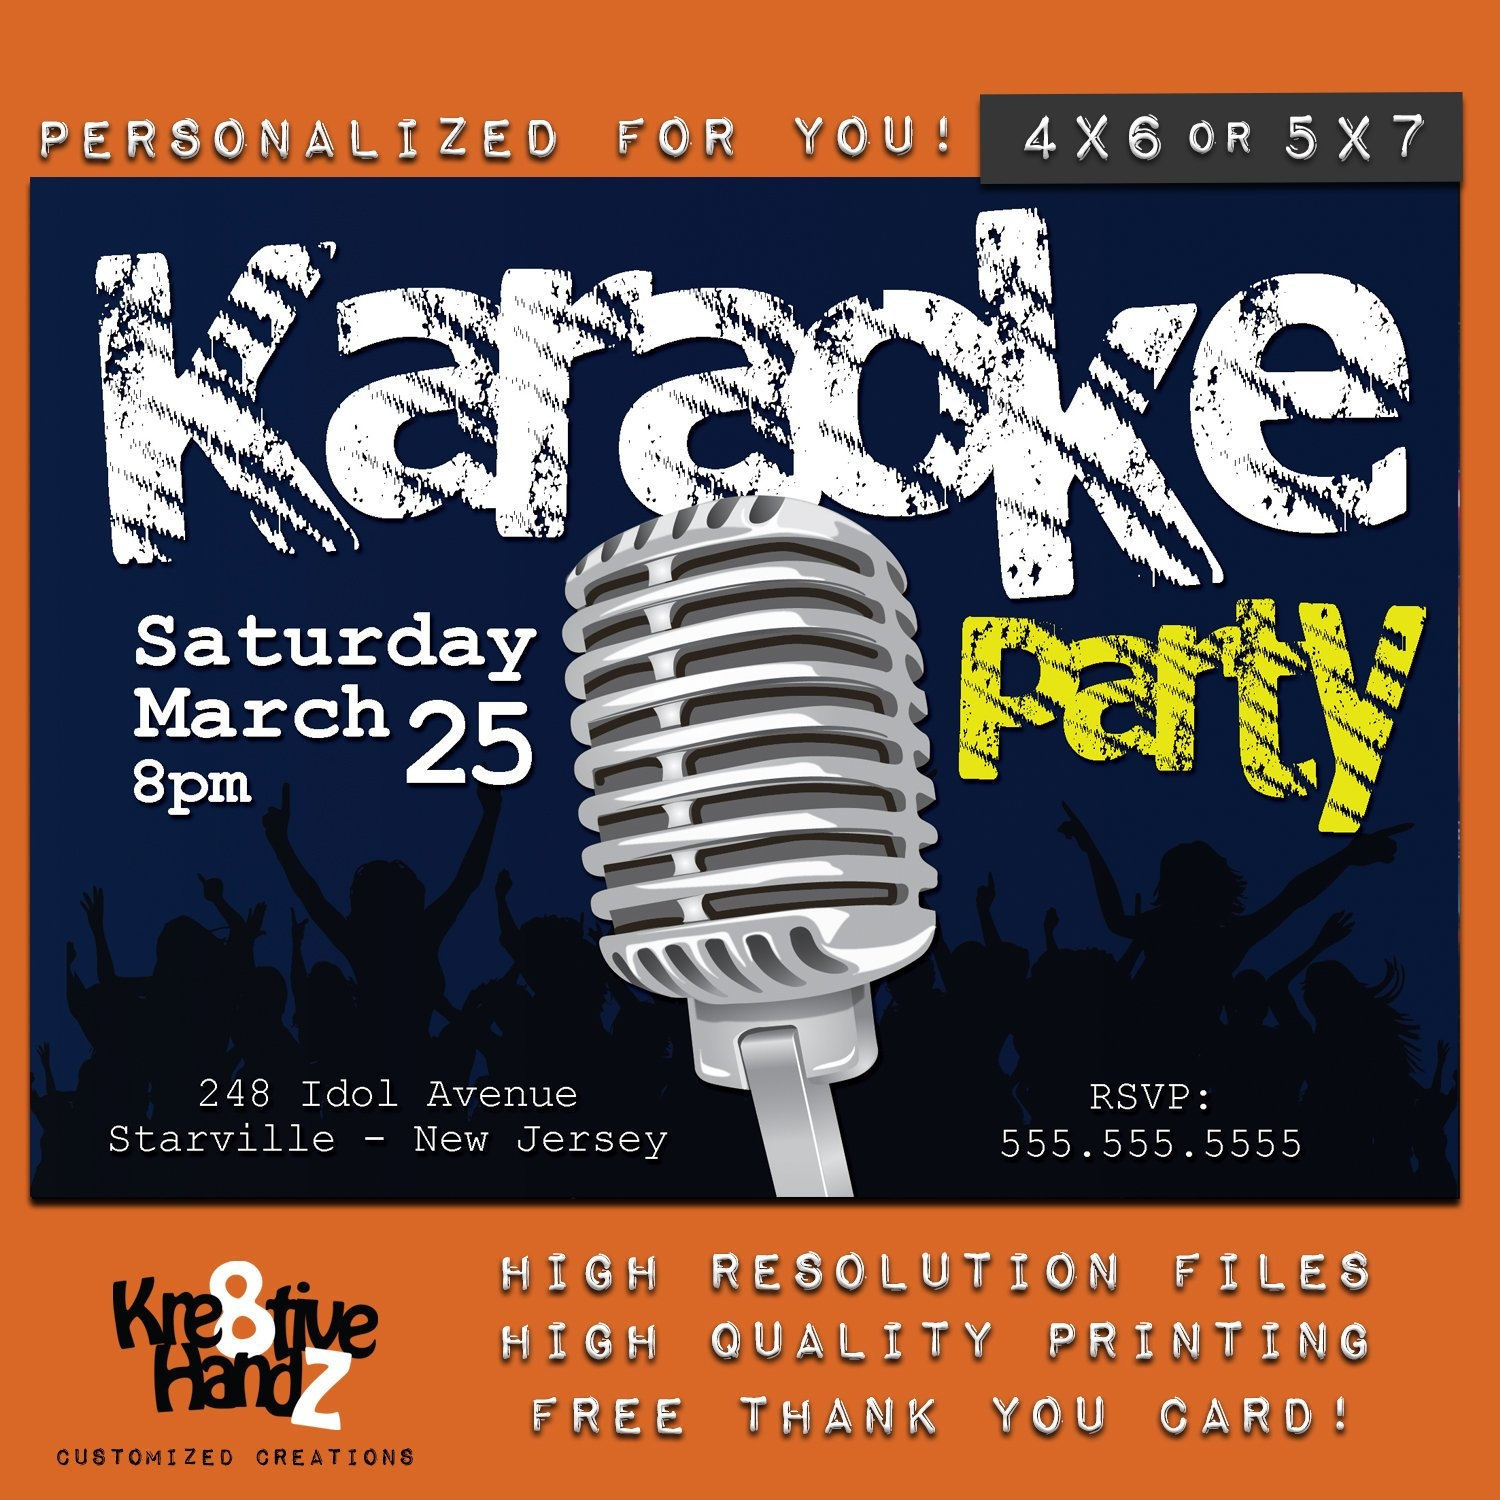 Karaoke Party Invitation Personalized Printable Karaoke Theme | Etsy - Free Printable Karaoke Party Invitations